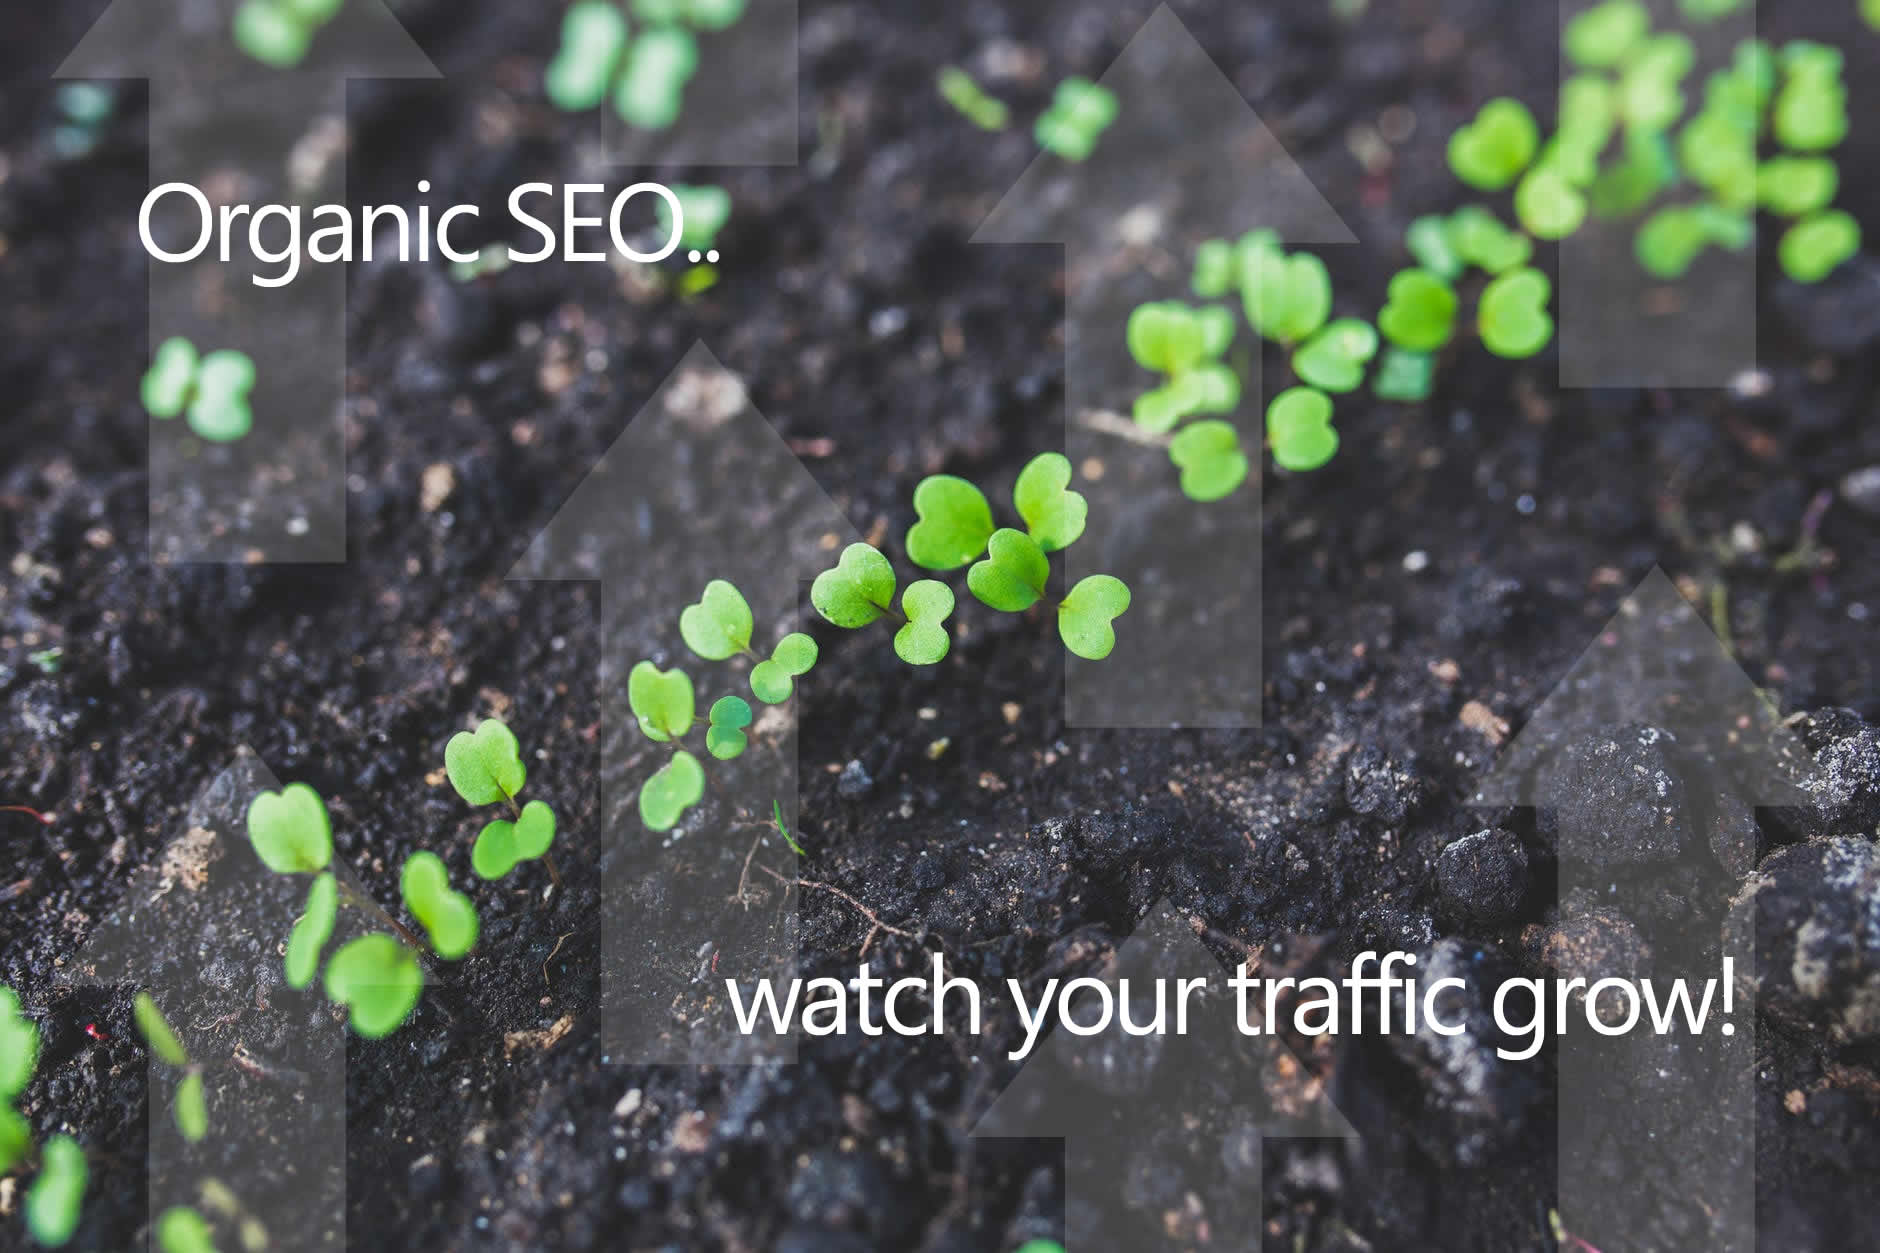 Seedlings to represent organic search engine positioning